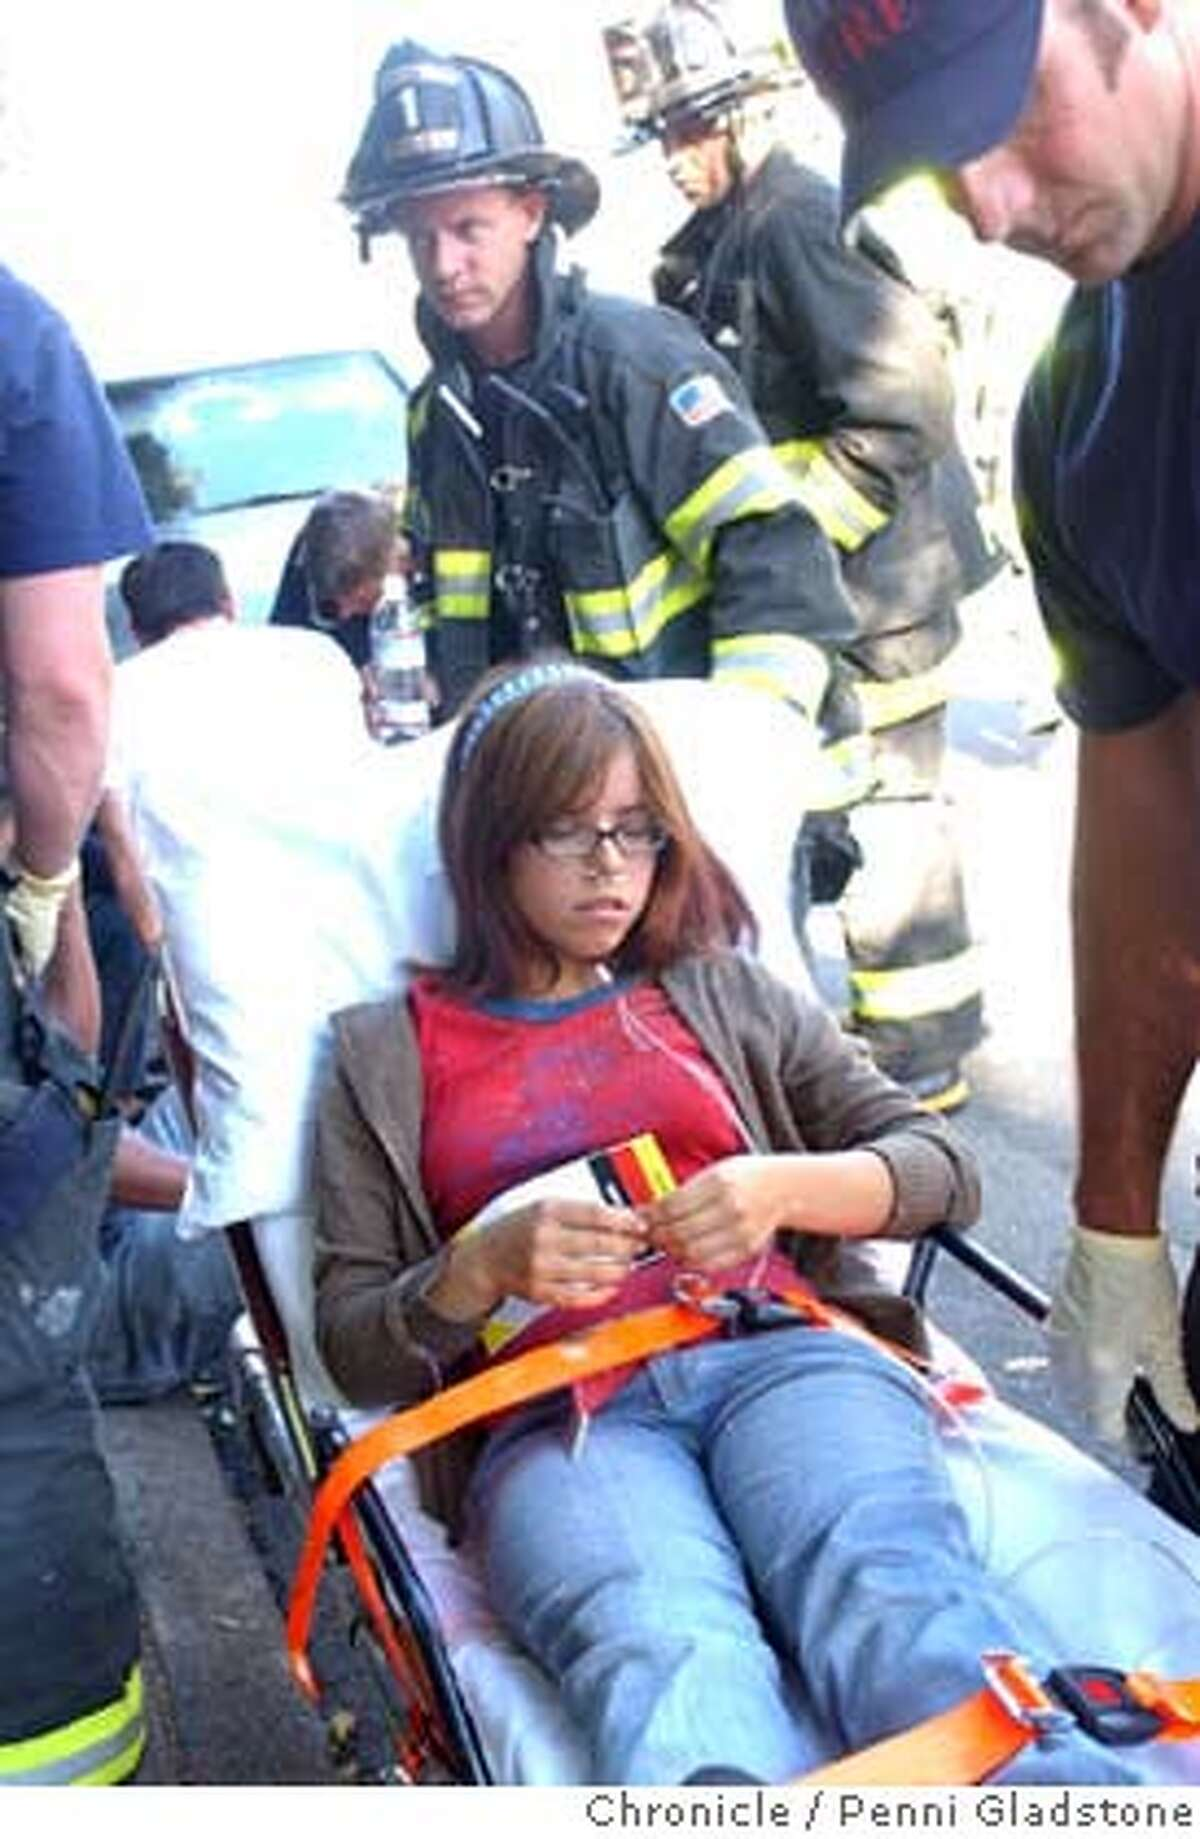 Zoe Mendez hurt in the theater goes to the hospital. Sequoia Theatre in Mill Valley was showing a matinee when part of the roof collapsed on the patrons who then ran out of the building covered in insulation. MV police and Sherriff and MV fire responded. About 33 people were in the theatre. 3 taken to hospital (ck) 8/16/04 in Mill Valley. Penni Gladstone / The Chronicle